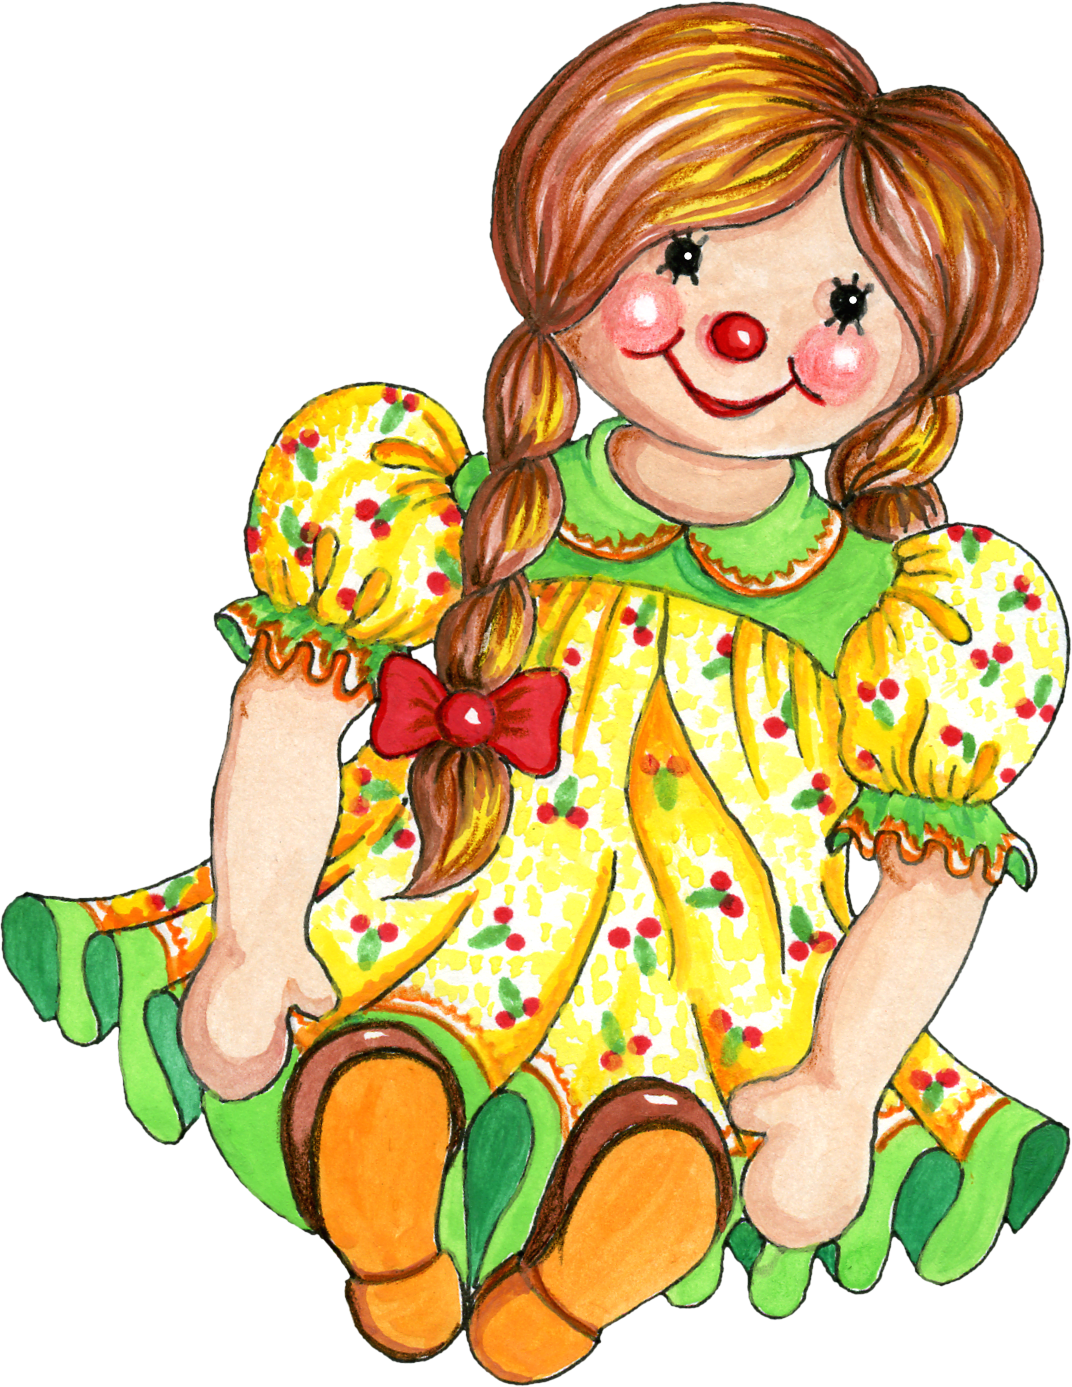 clipart of doll - photo #27